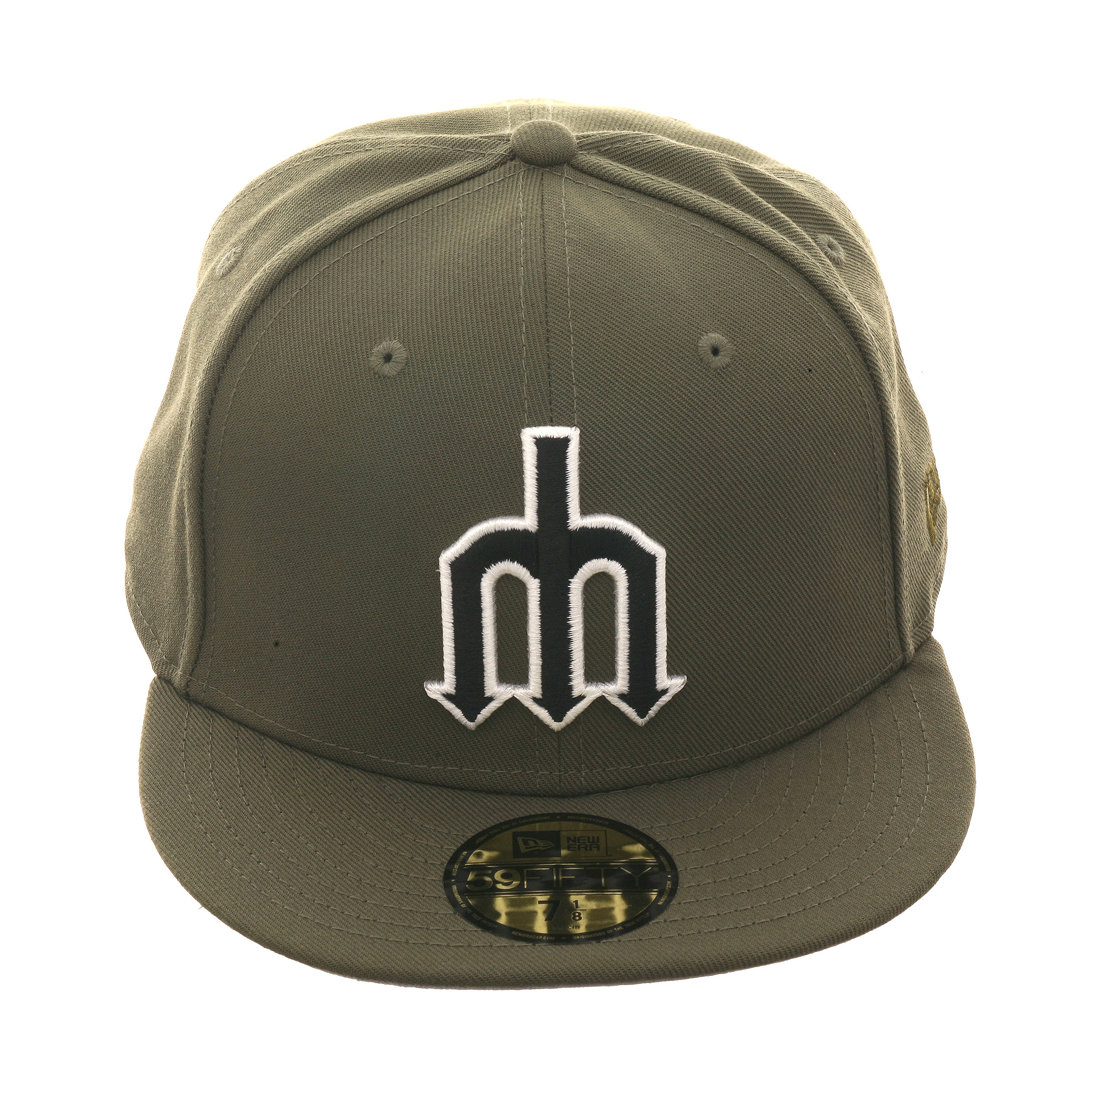 b7c953190a1 Exclusive New Era 59Fifty Seattle Mariners BP Fitted Hat - Olive ...